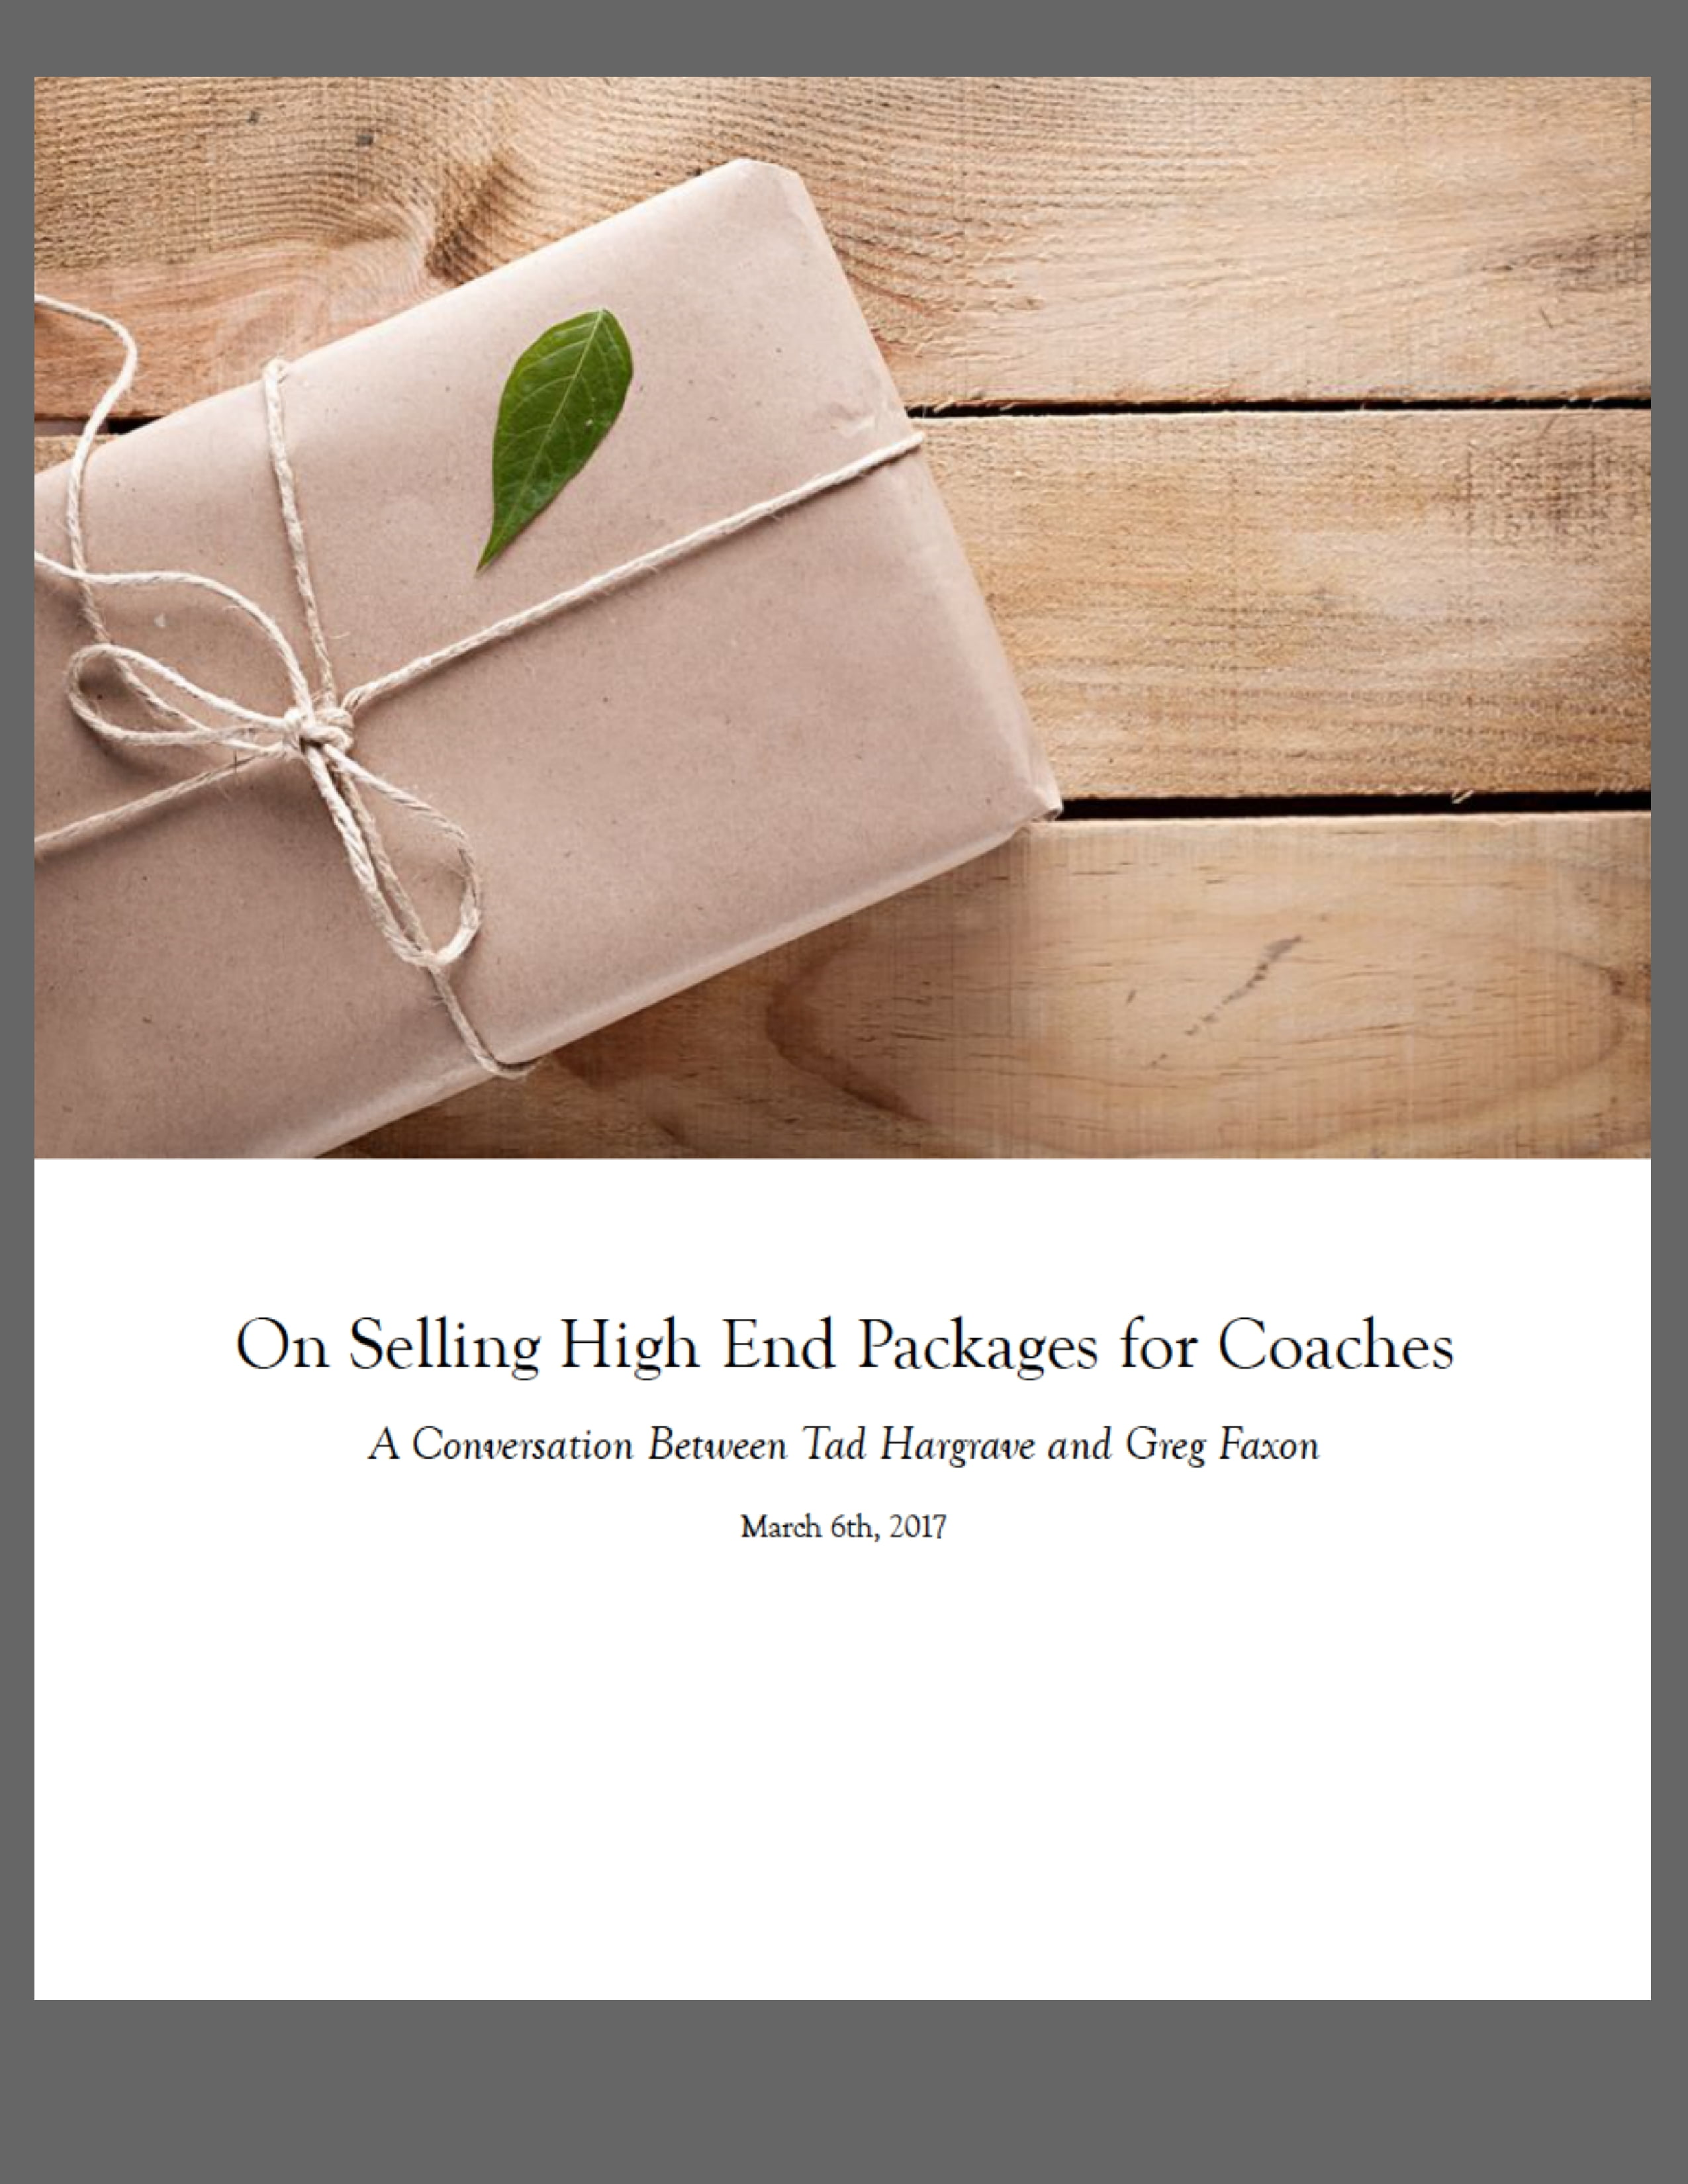 On Selling High End Packages for Coaches: A Conversation Between Tad Hargrave and Greg Faxon